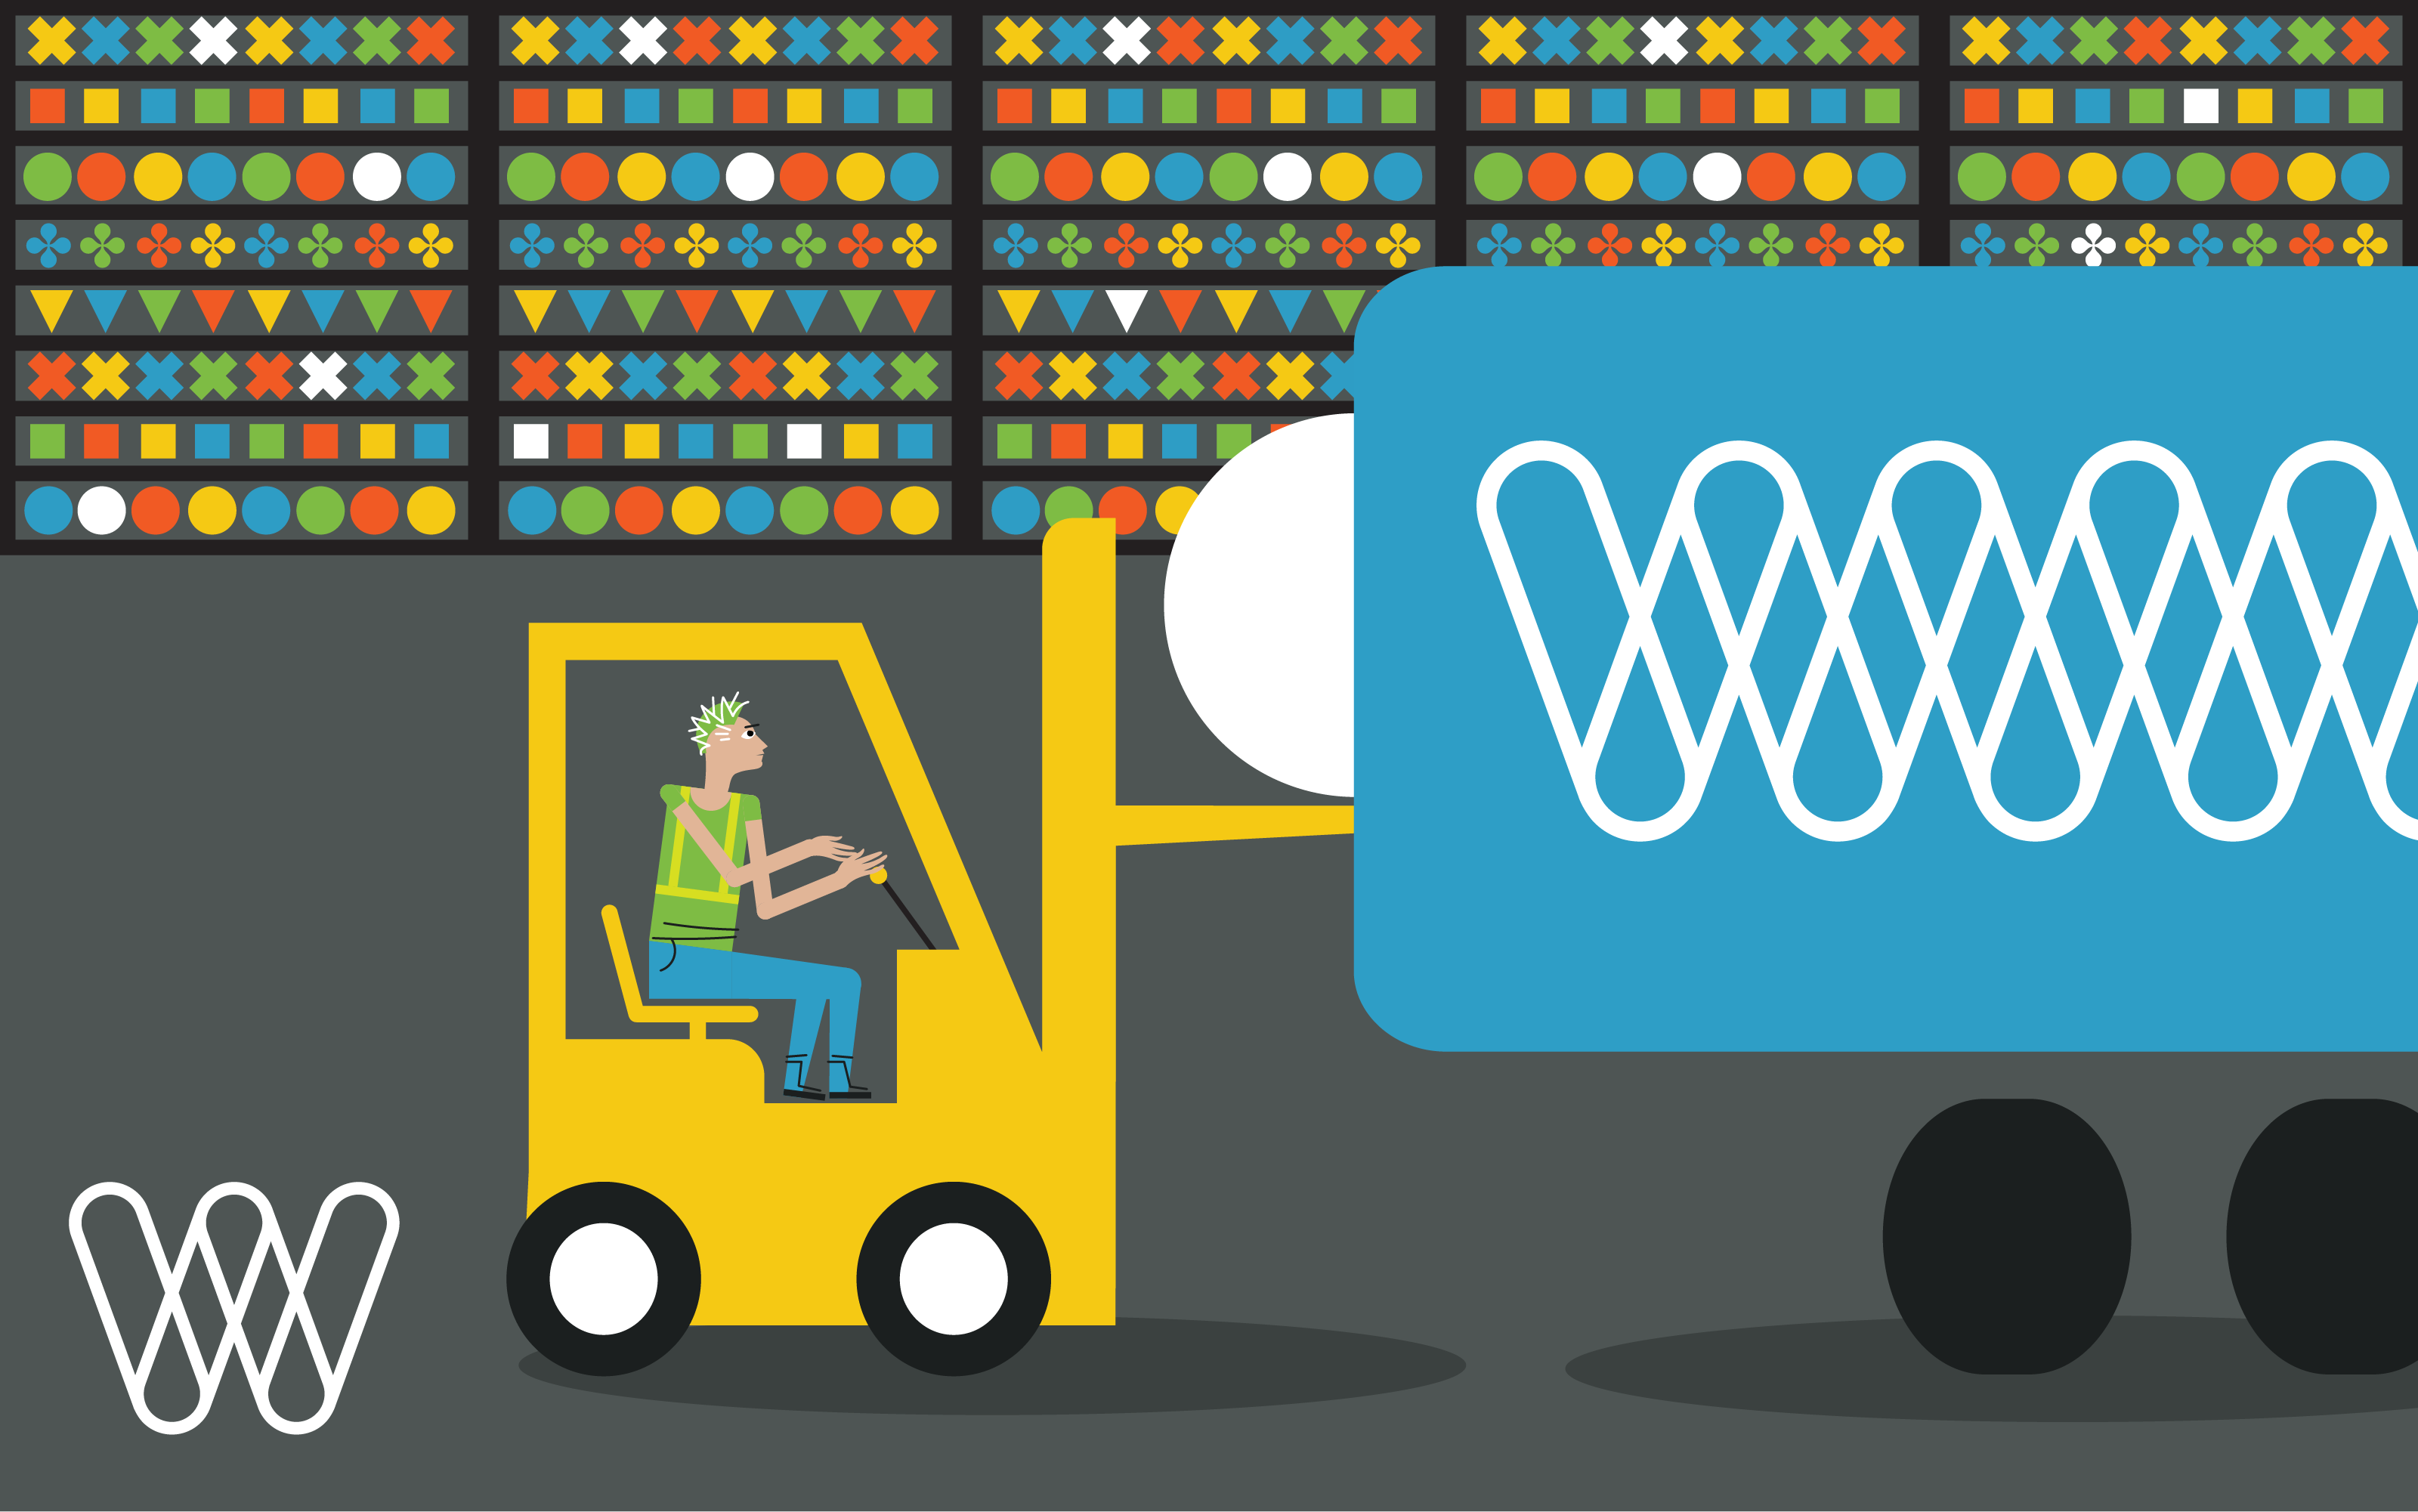 illustration of a person using a forklift in a warehouse